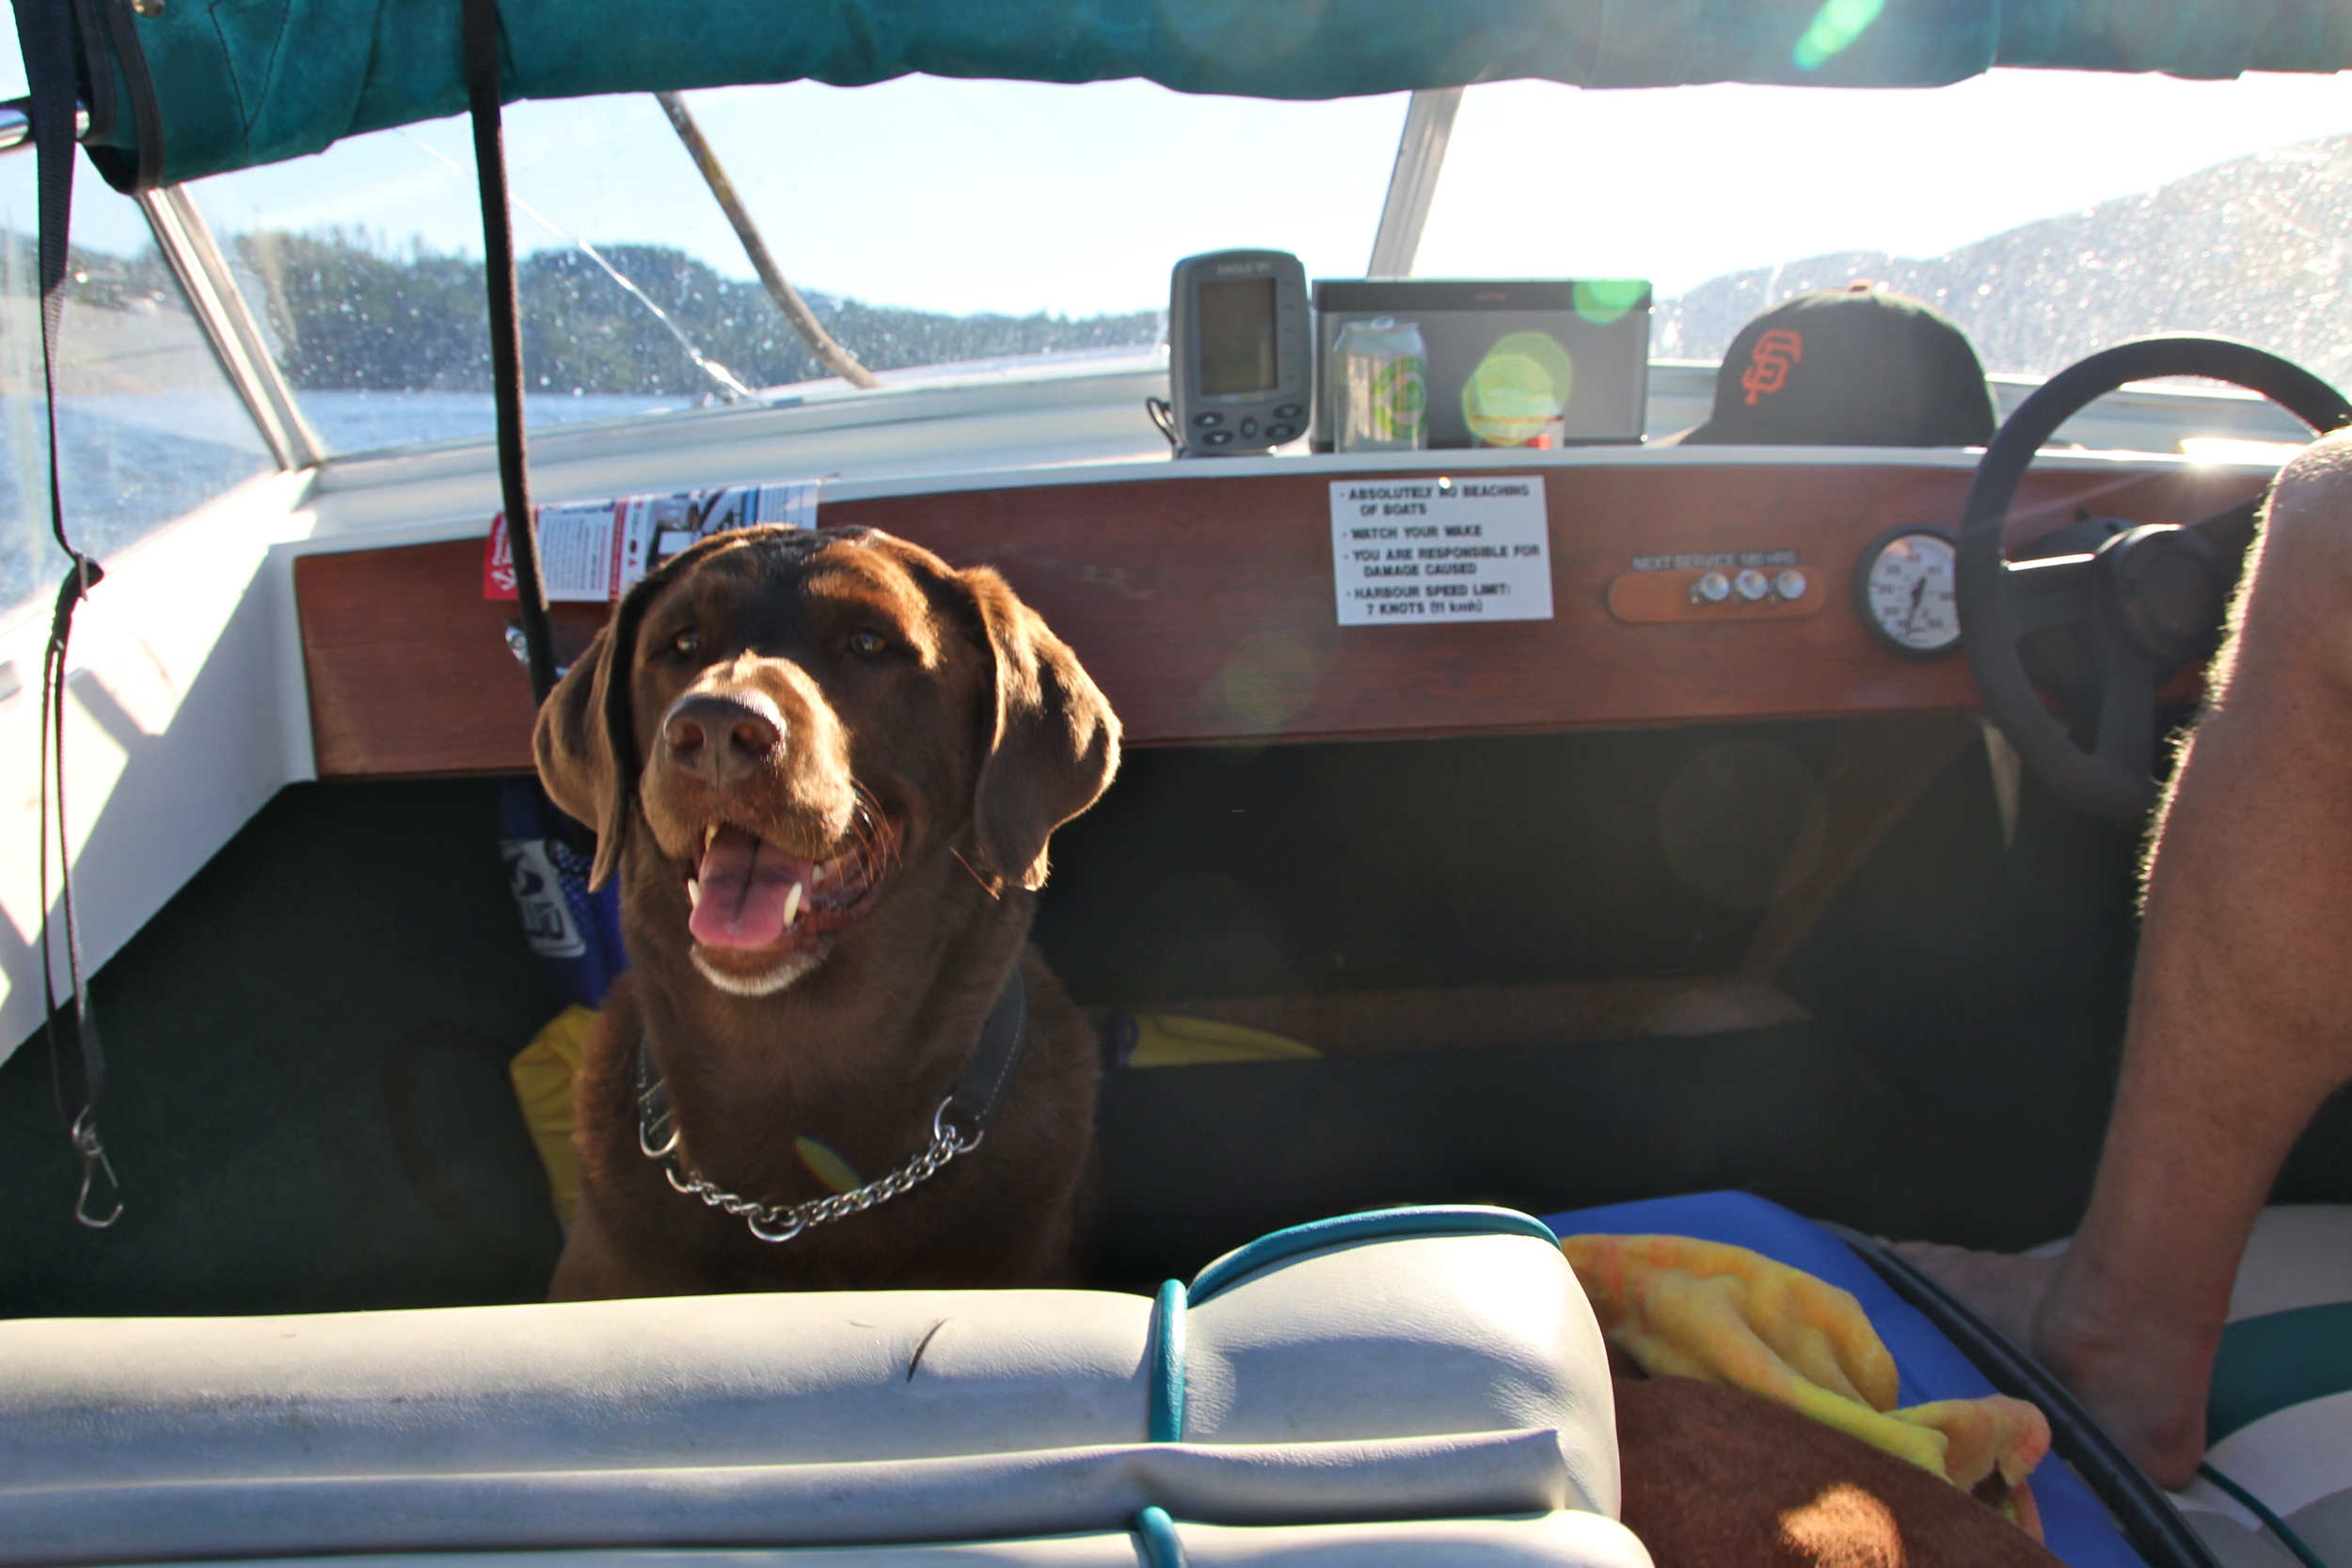 We decided to rent a boat from our hotel one afternoon and cruise around Pender Harbour. This was Rypien's second time in a boat and he was pretty unsure at first but started to warm up to the idea near the end.